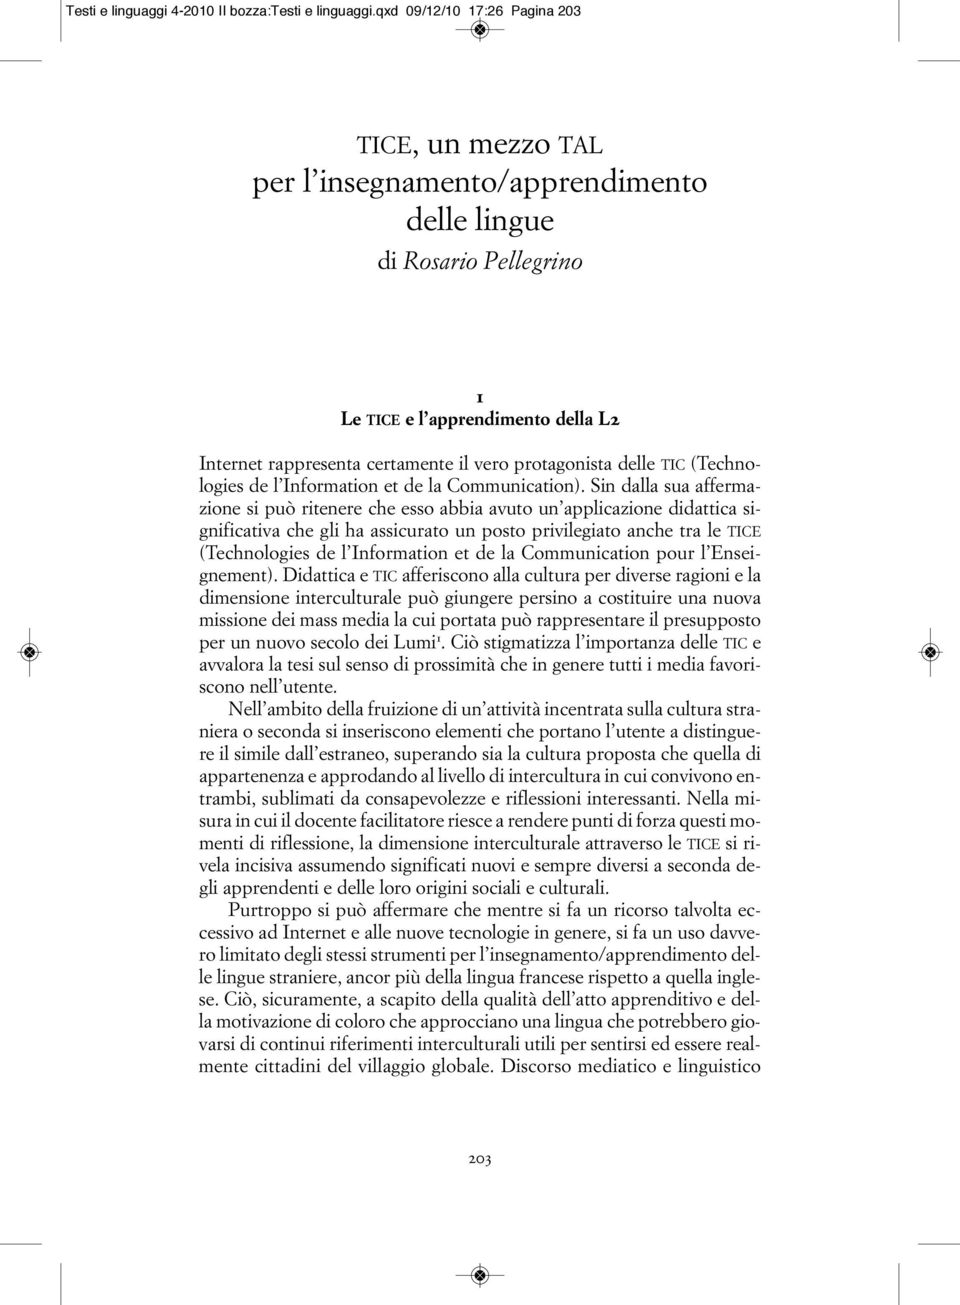 protagonista delle TIC (Technologies de l Information et de la Communication).